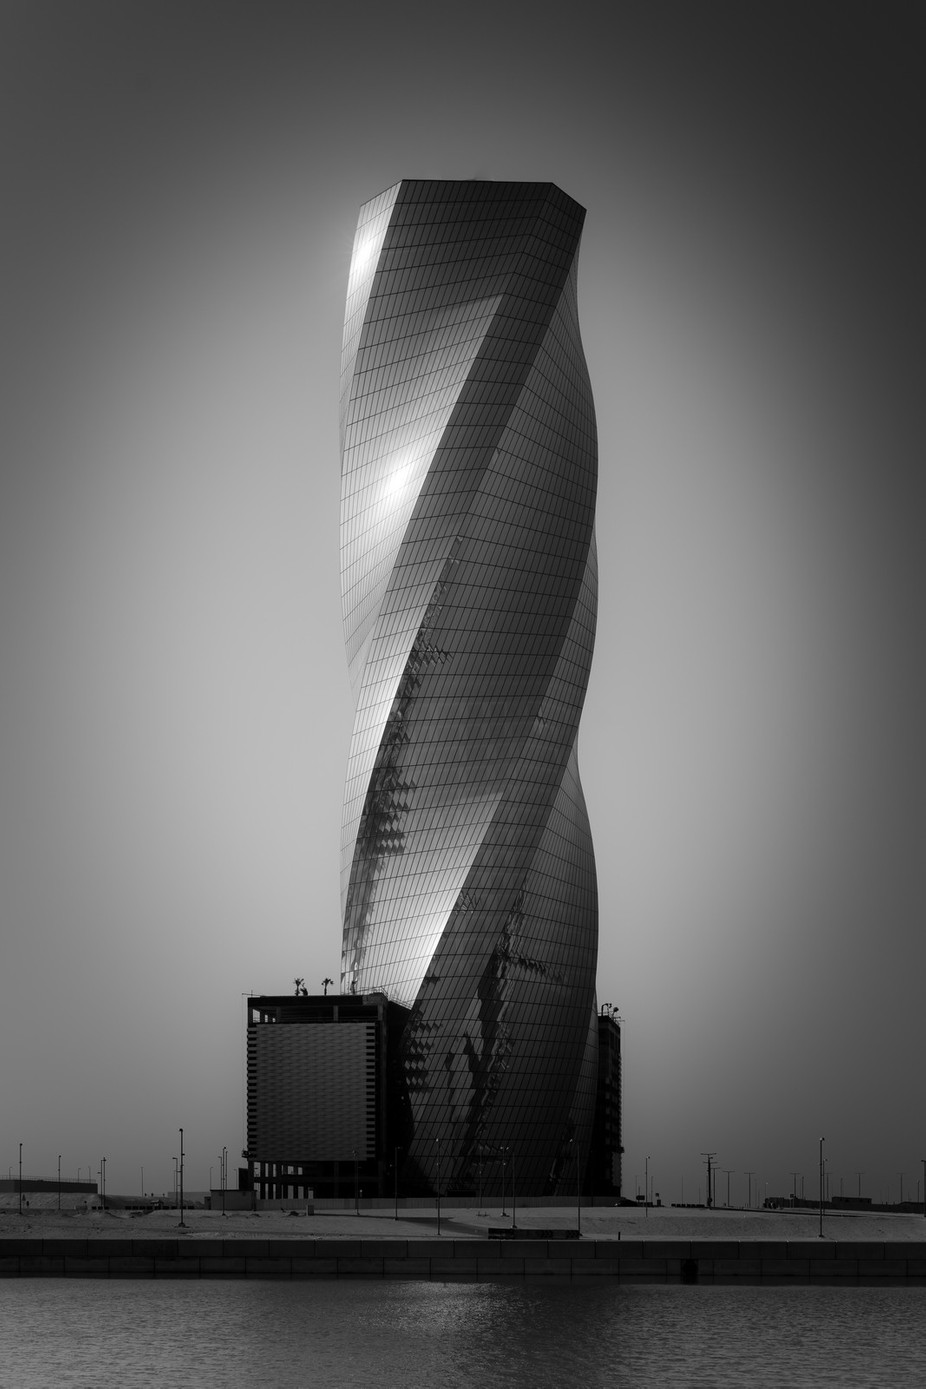 United Tower Bahrain by Craigwww - Black And White Architecture Photo Contest